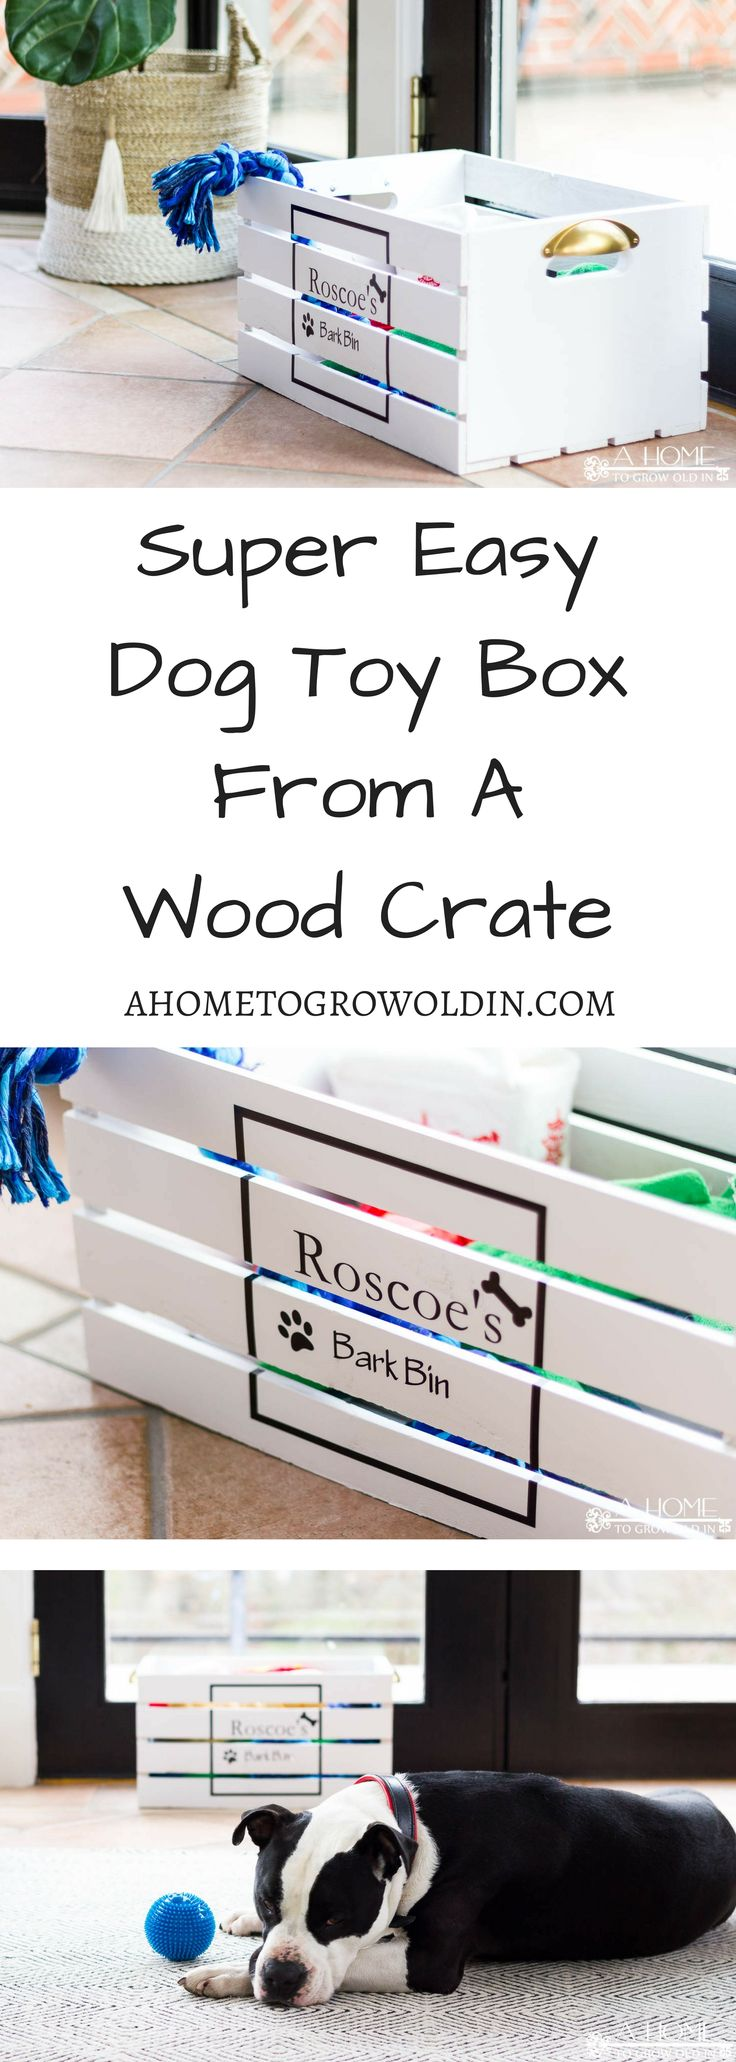 How To Make An Easy DIY Dog Toy Box | Free silhouette ...